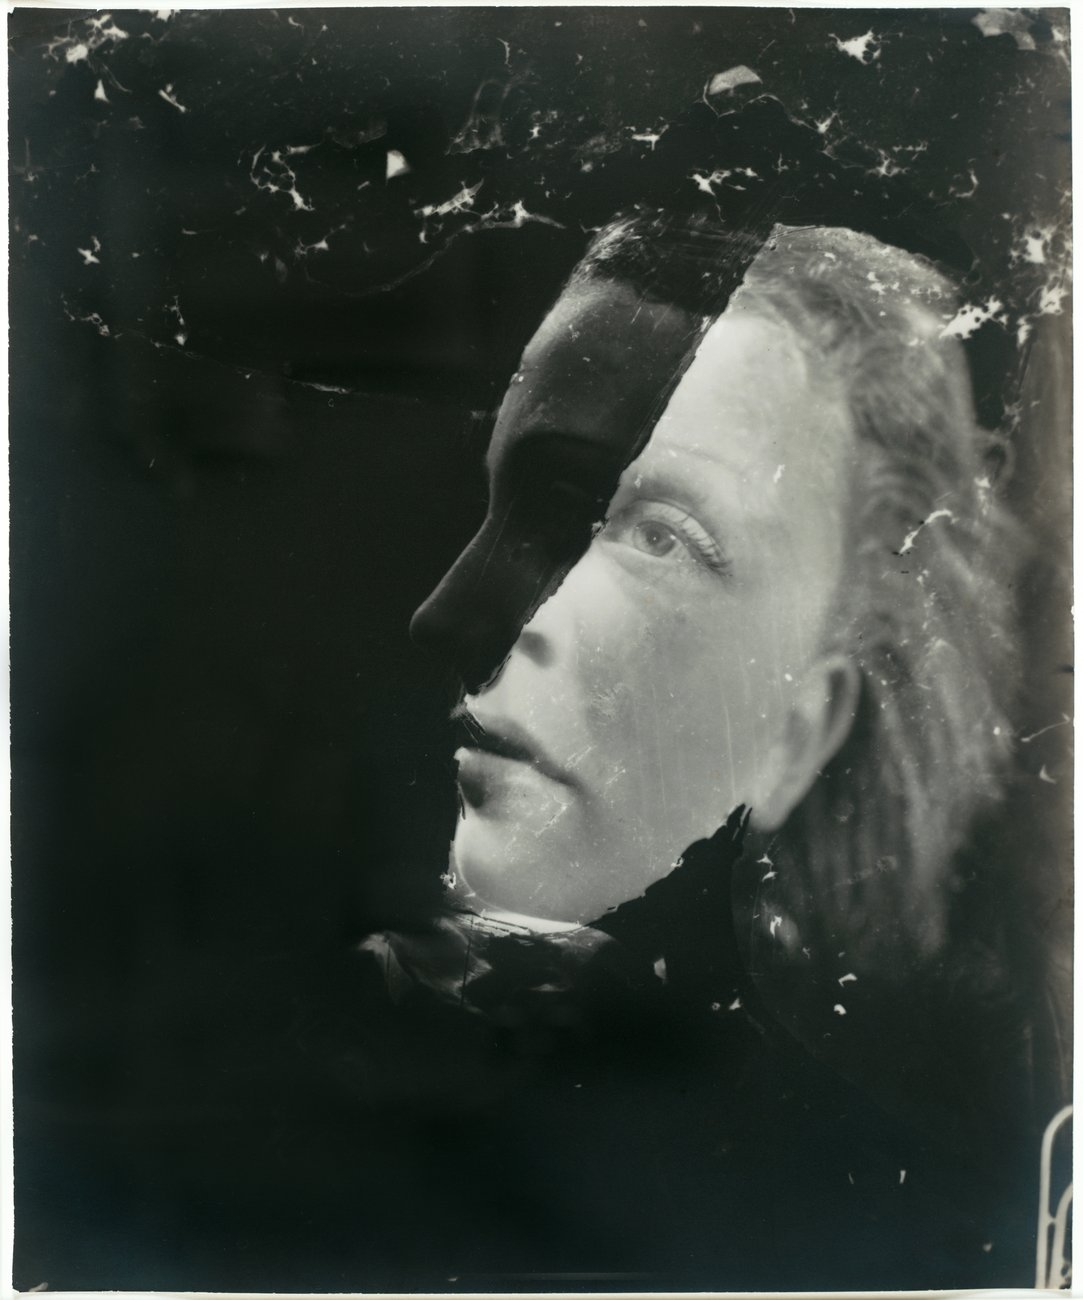 A double photograph of a blue-eyed woman seen straighton and in profile against an uneven black background